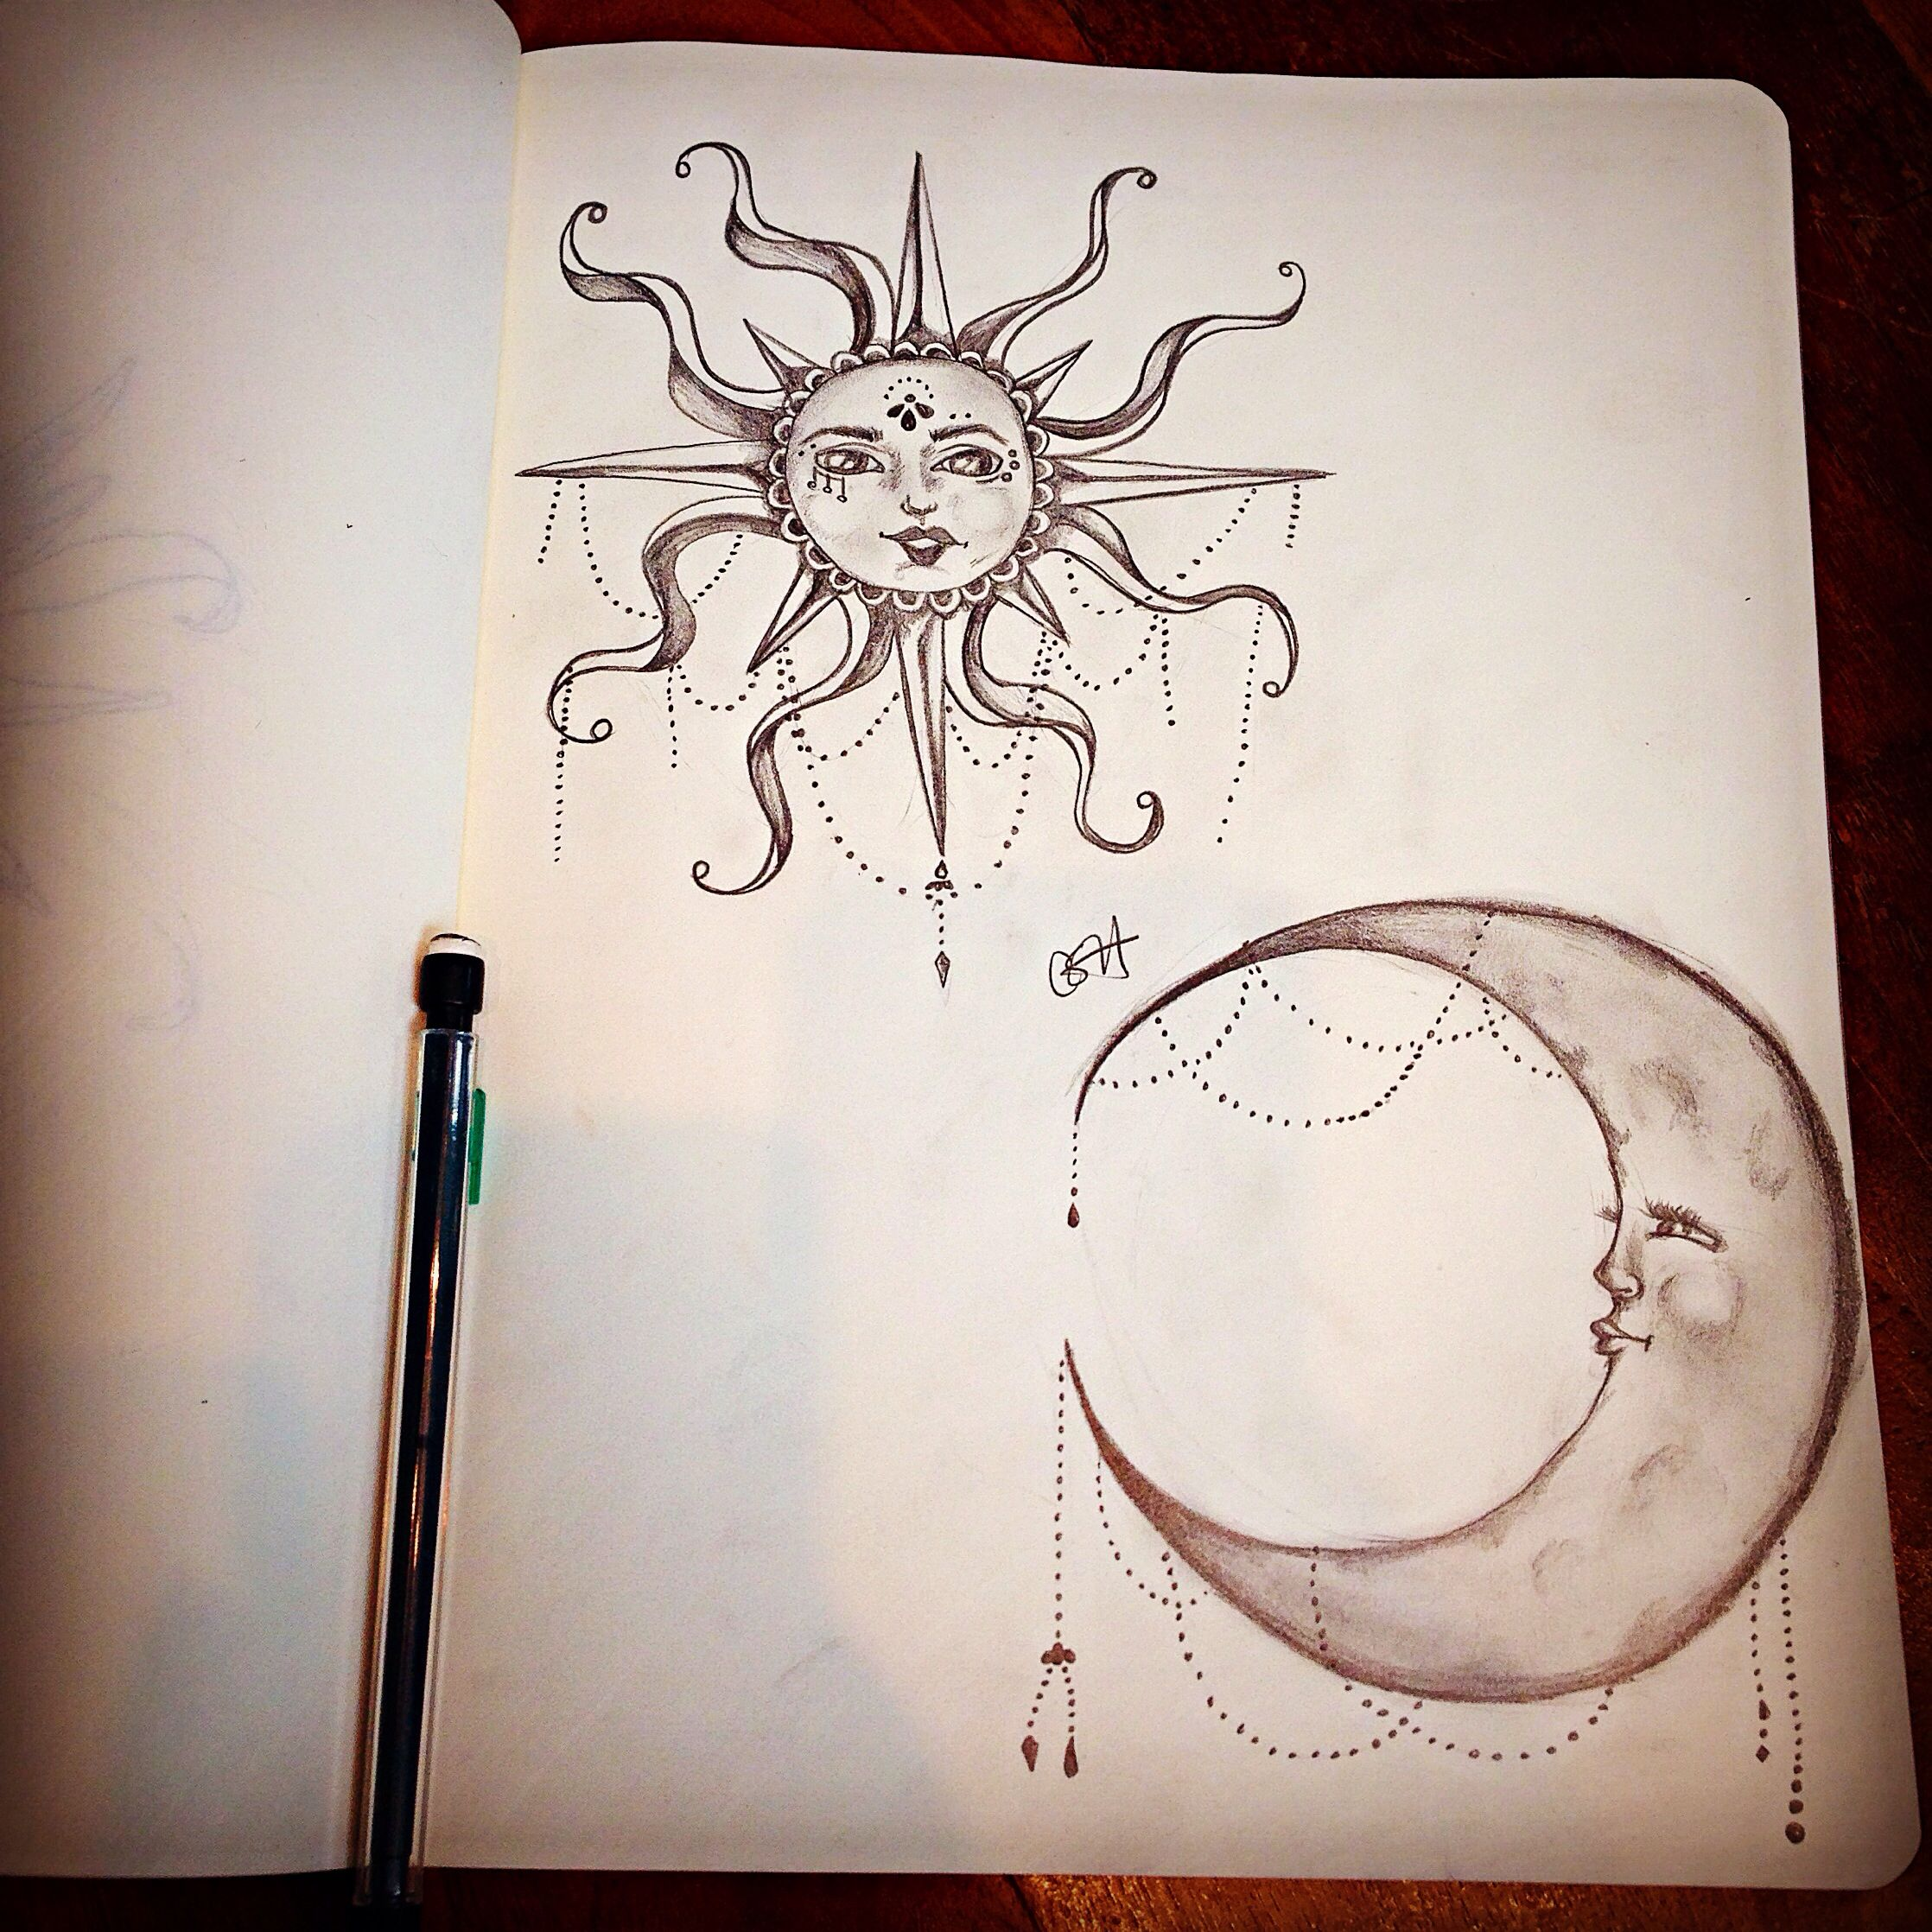 2236x2236 Moon Amp Sun Pencil Drawing The Pencil Heart Moon